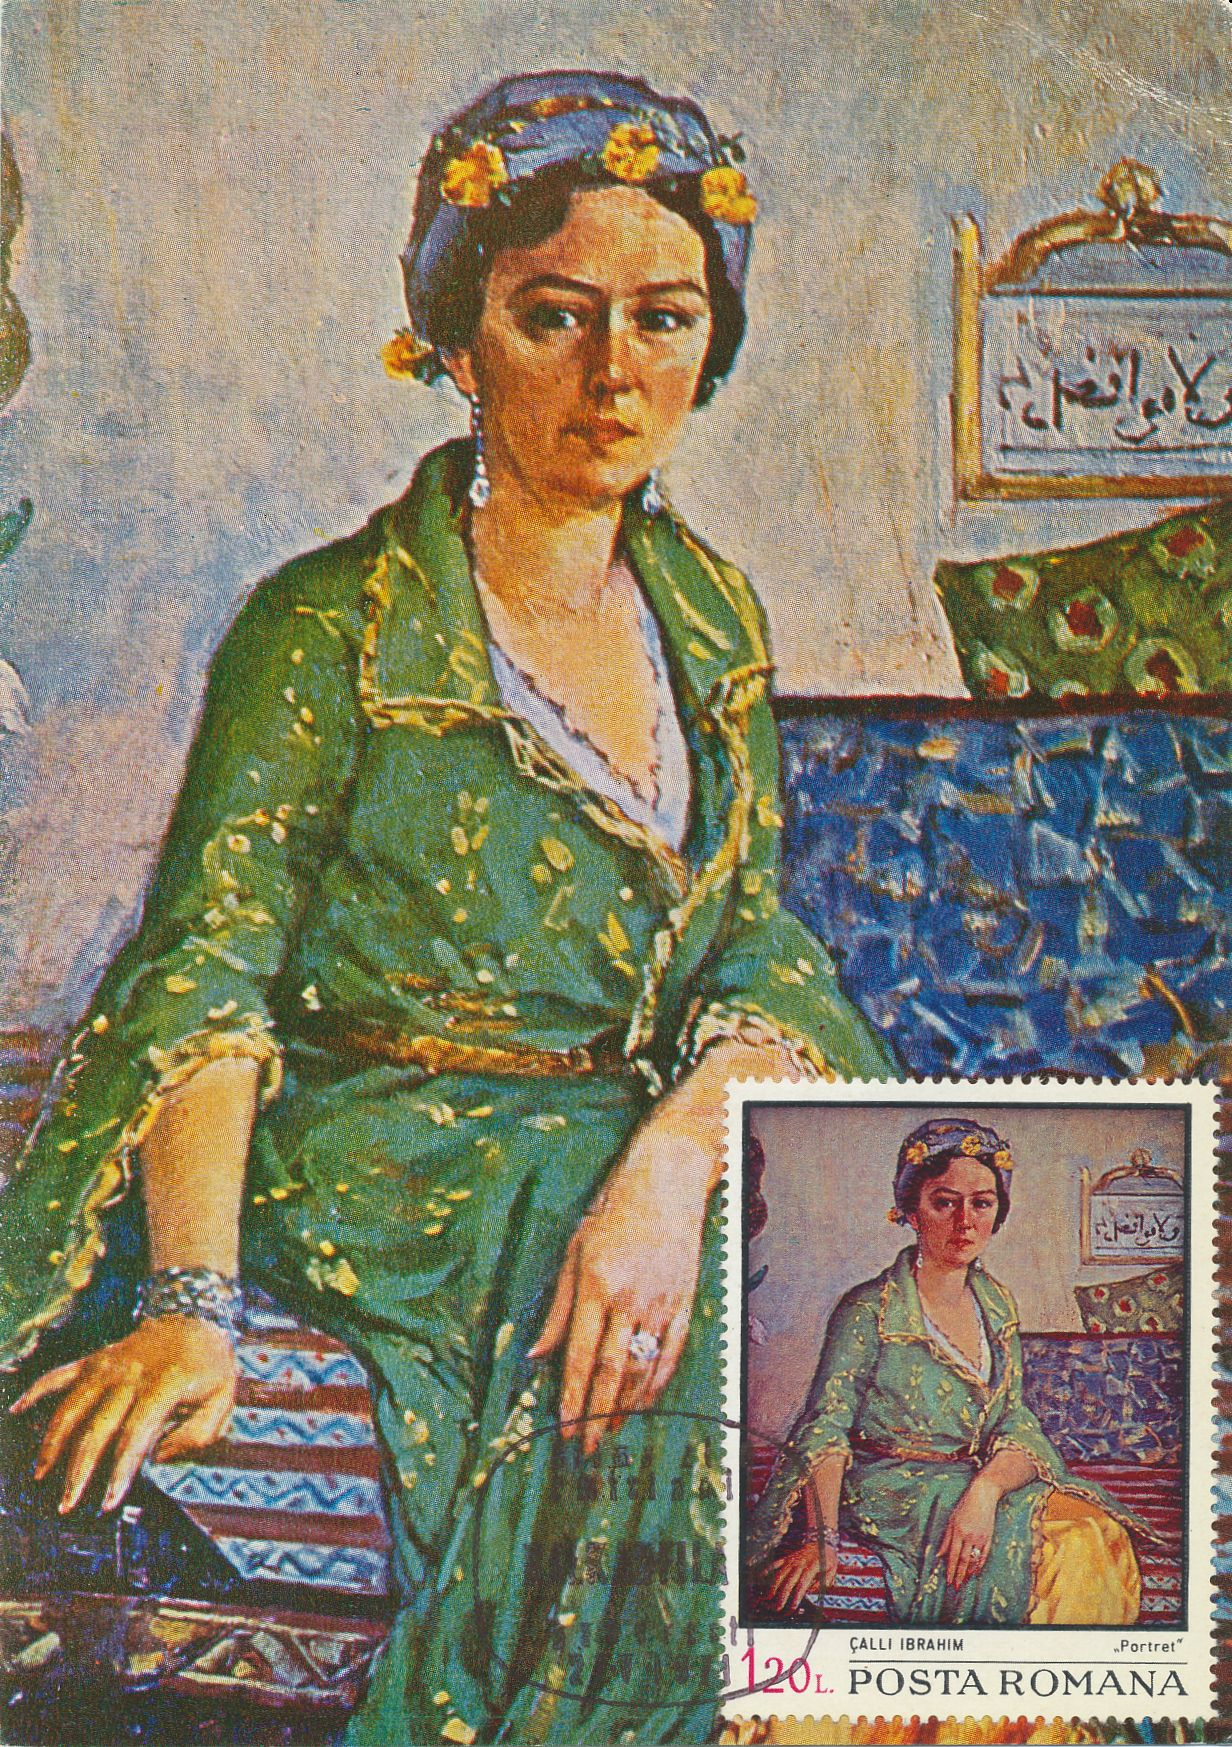 Woman in Green Dress, Mrs. Vicdan Moralı's Portrait